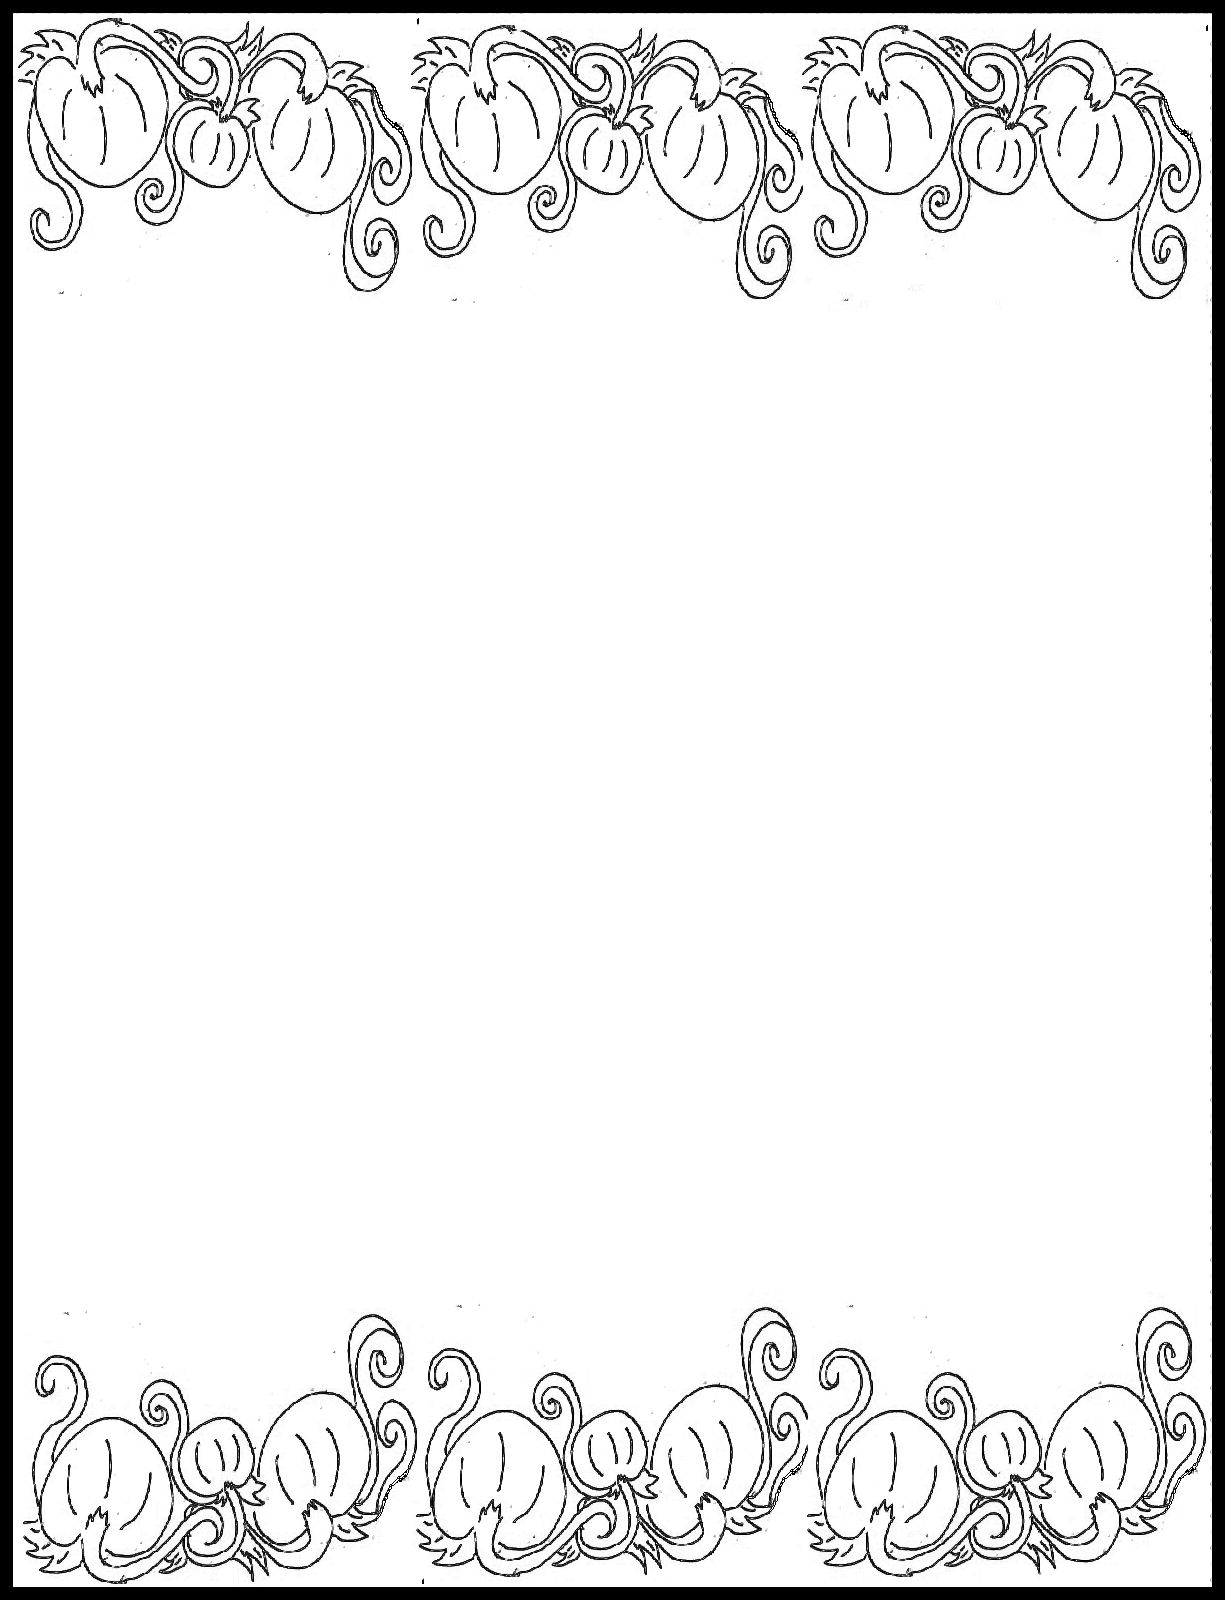 Free Exercise Border Cliparts Download Free Clip Art